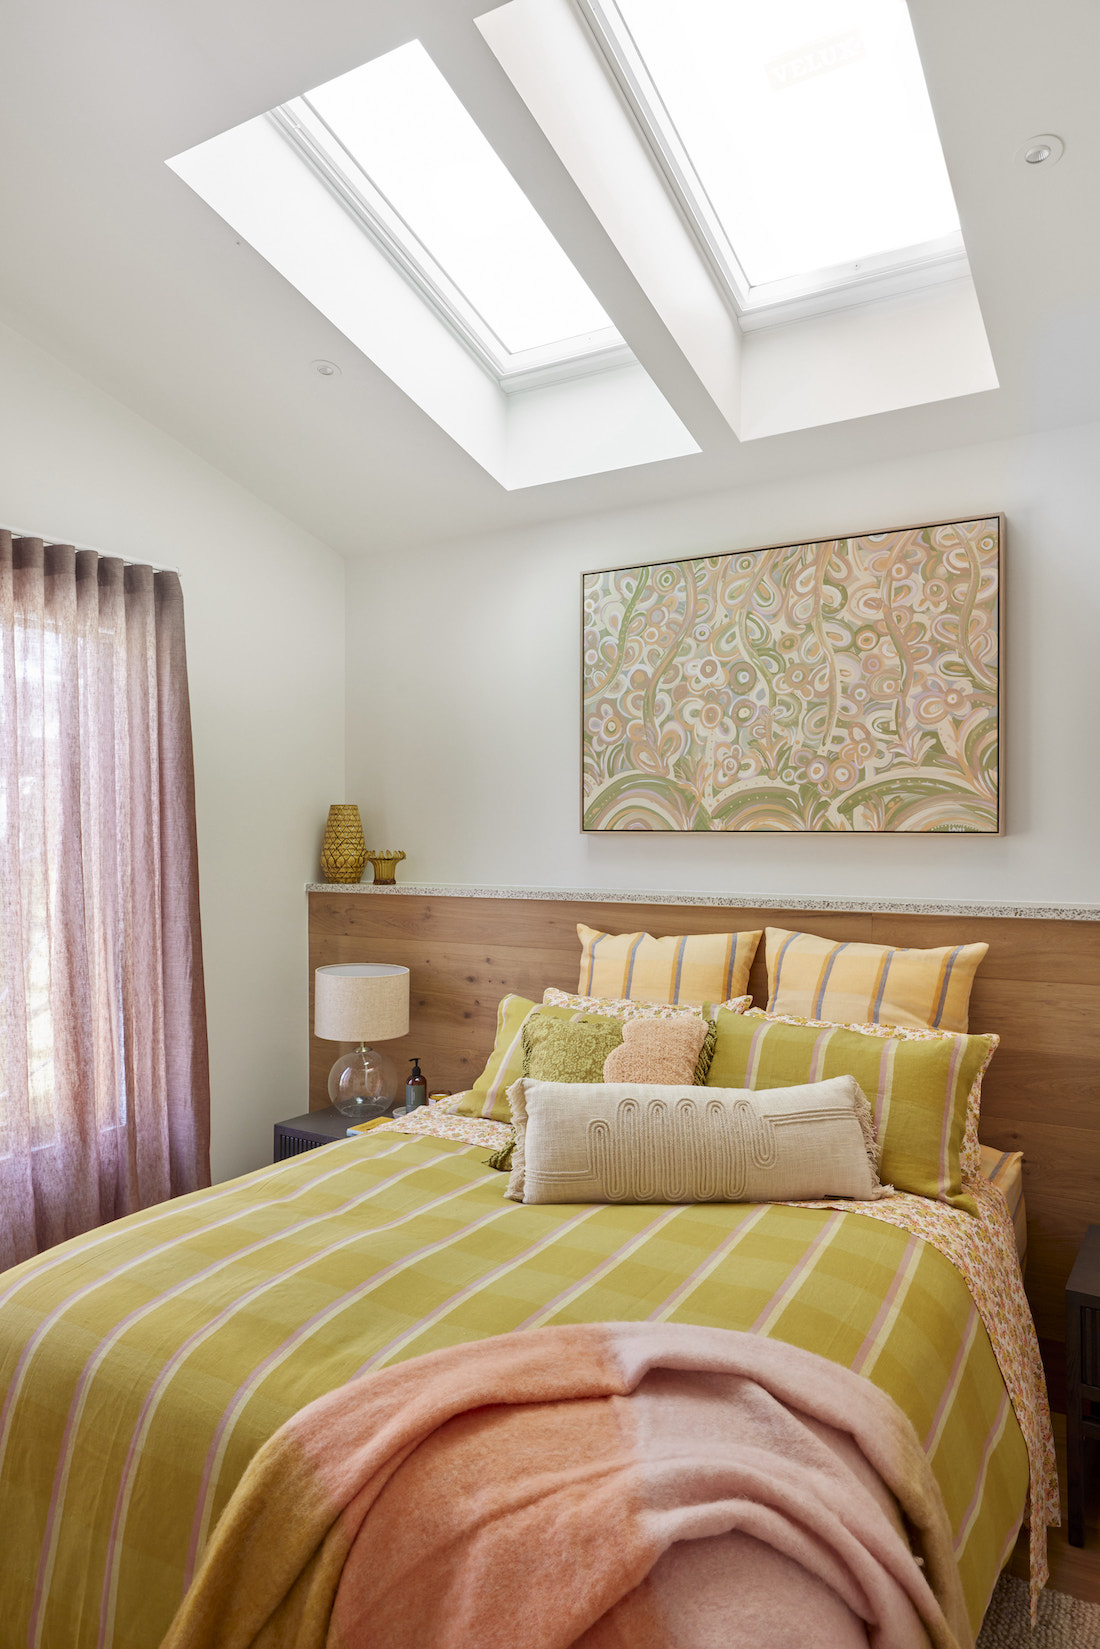 Guest bedroom with abstract art and green bedding